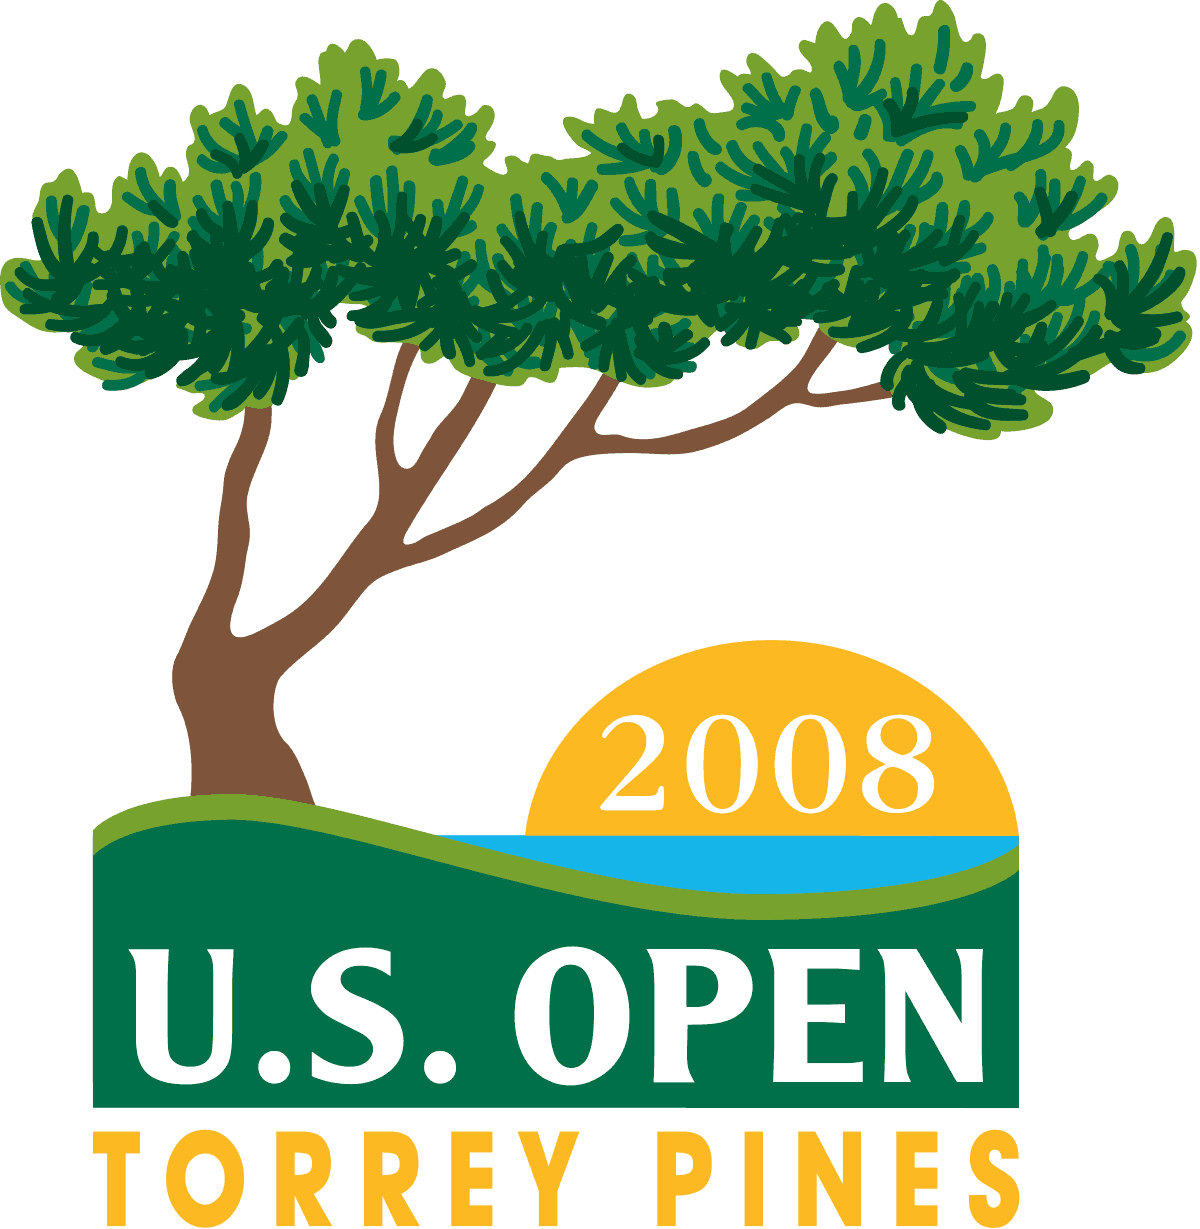 Logo for the 2008 U.S. Open at Torrey Pines with a tree and sunset graphic